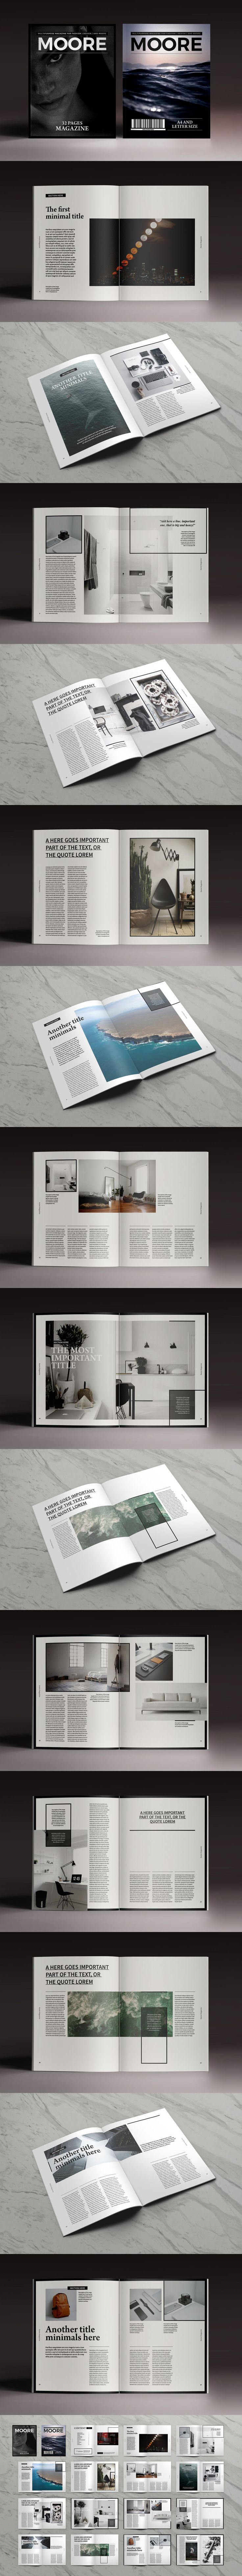 Multipurpose Magazine Template InDesign INDD - 32 Pages, Letter Size and A4 Size